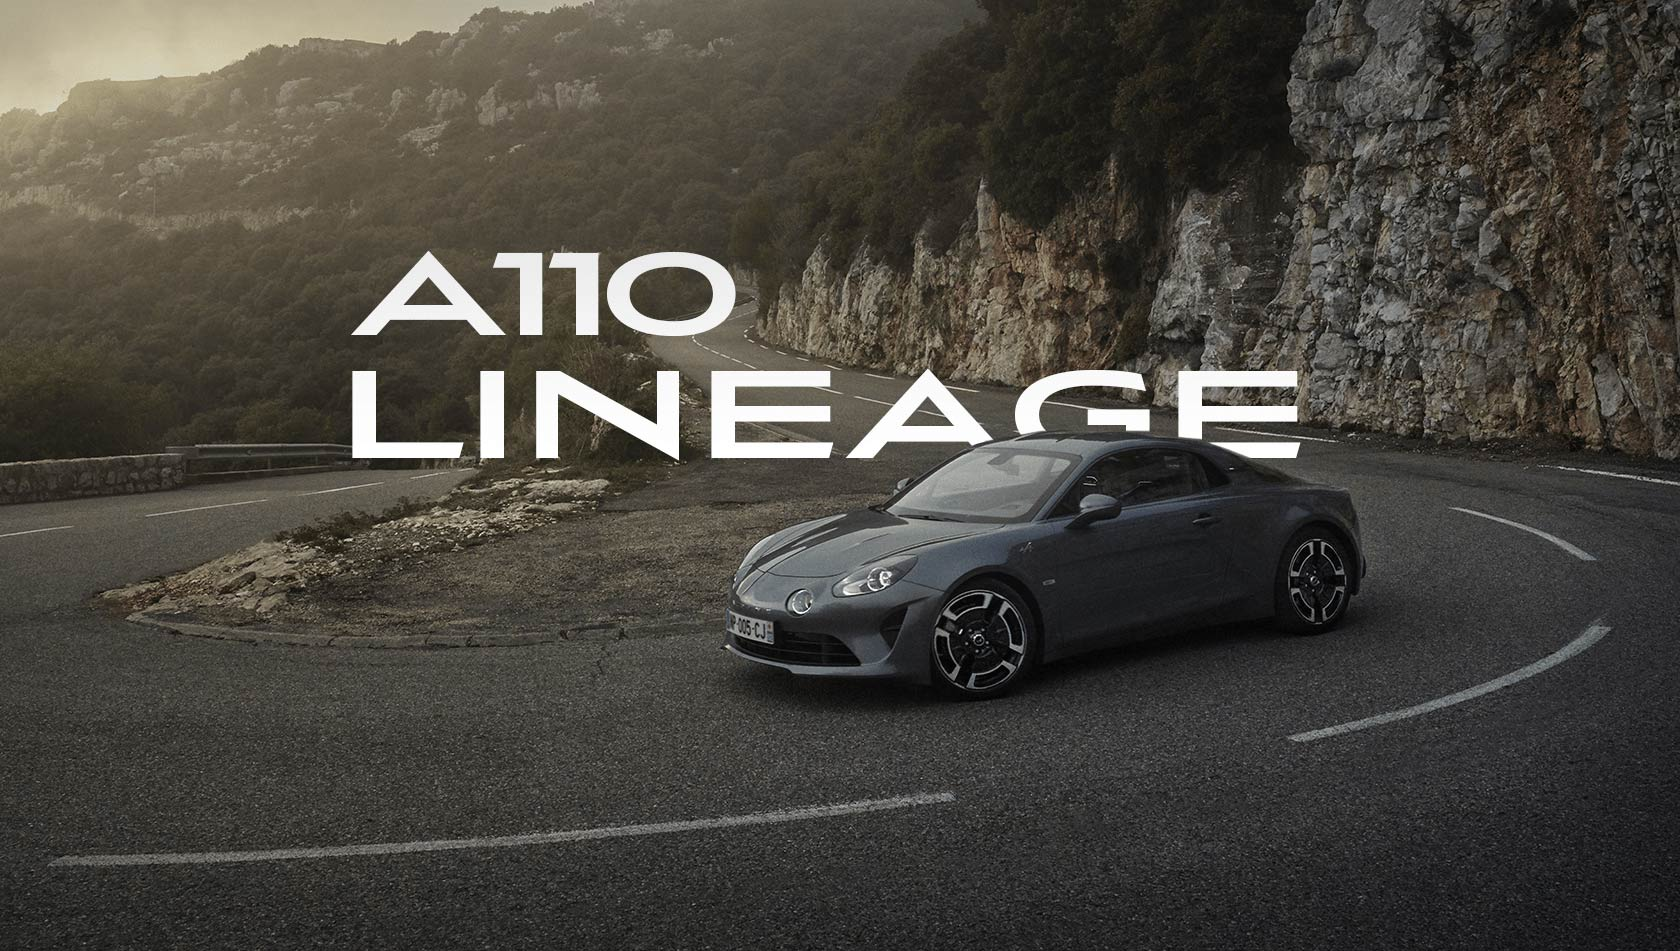 The A110 Lineage